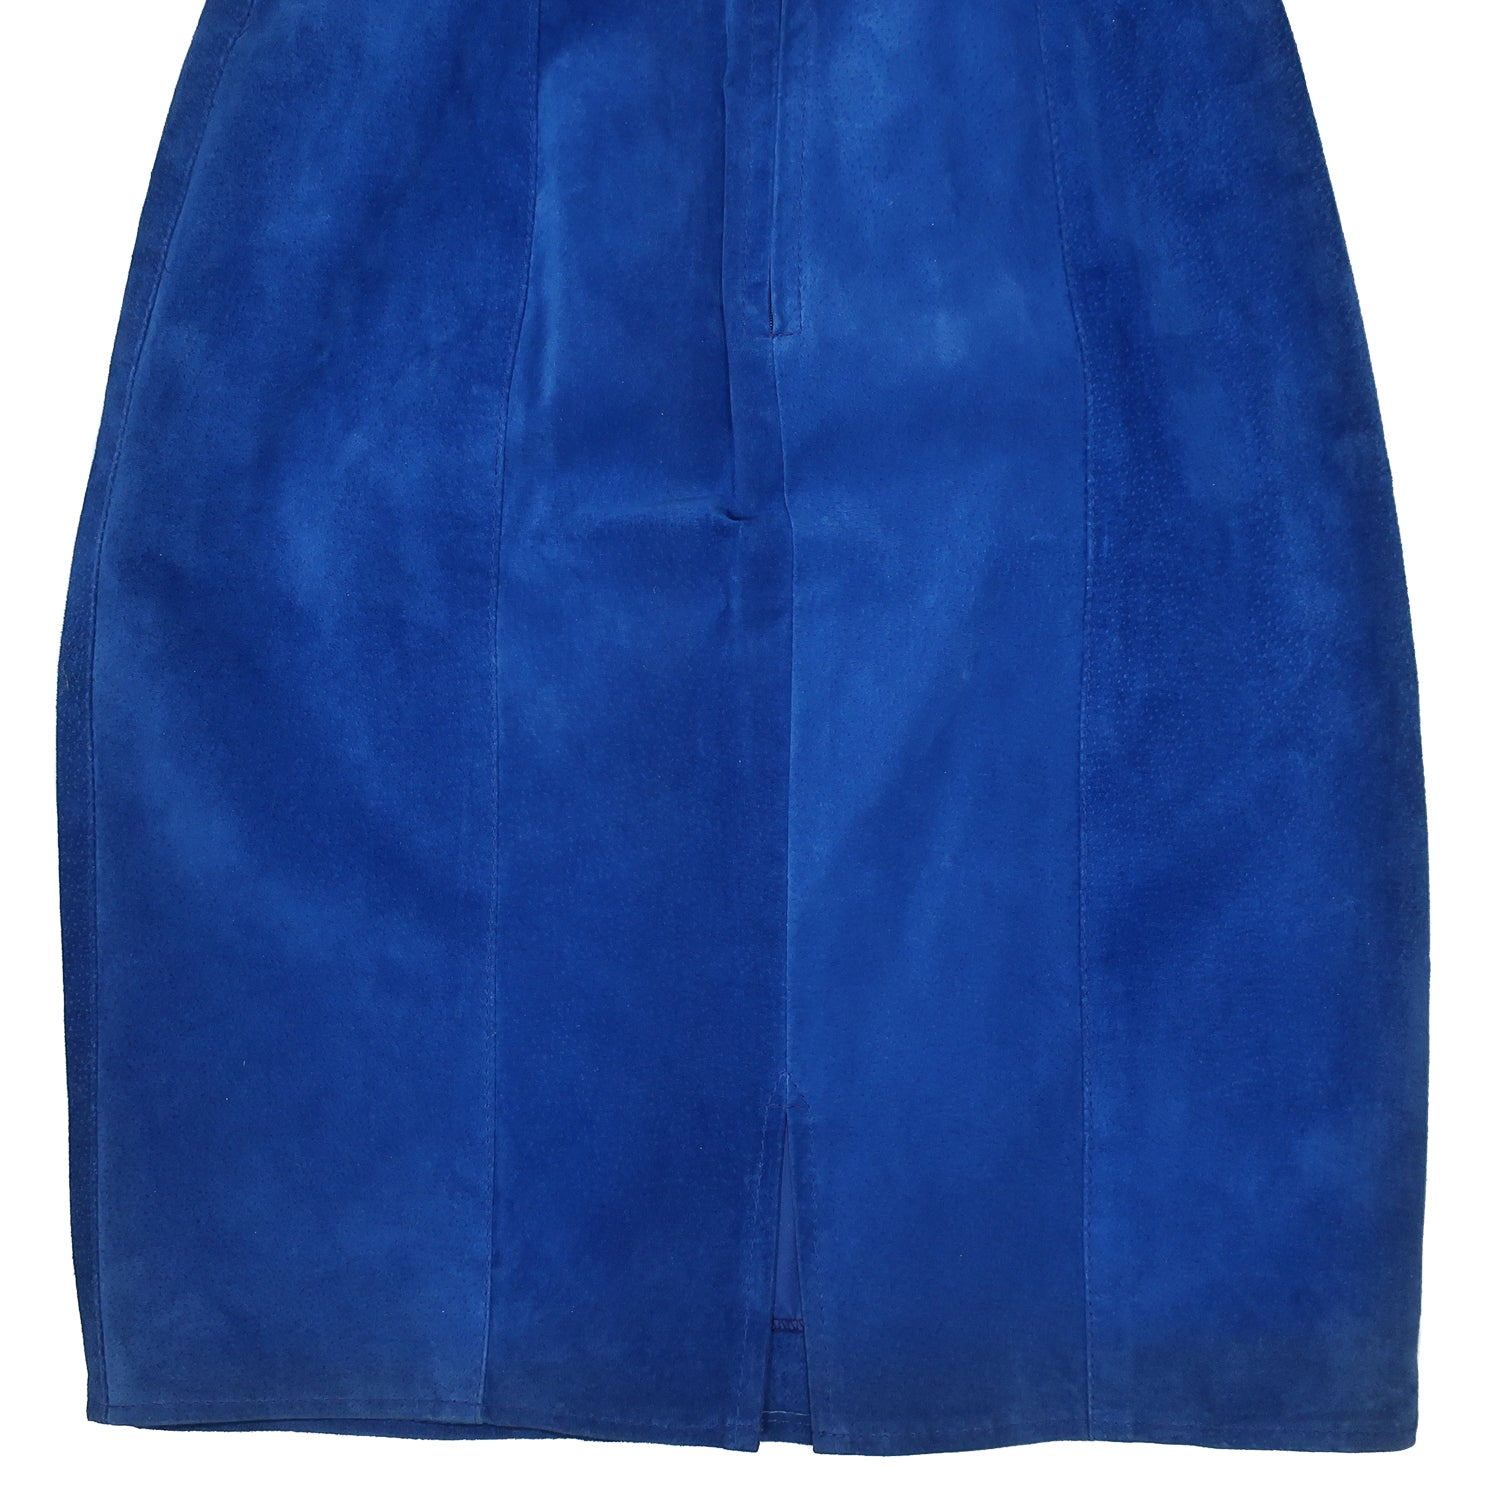 Second Room Vintage Clothing. Vintage bright blue, high waisted suede skirt. This skirt is fully lined, with snap and zipper at the back, and middle back slit. Free North American shipping on all orders.